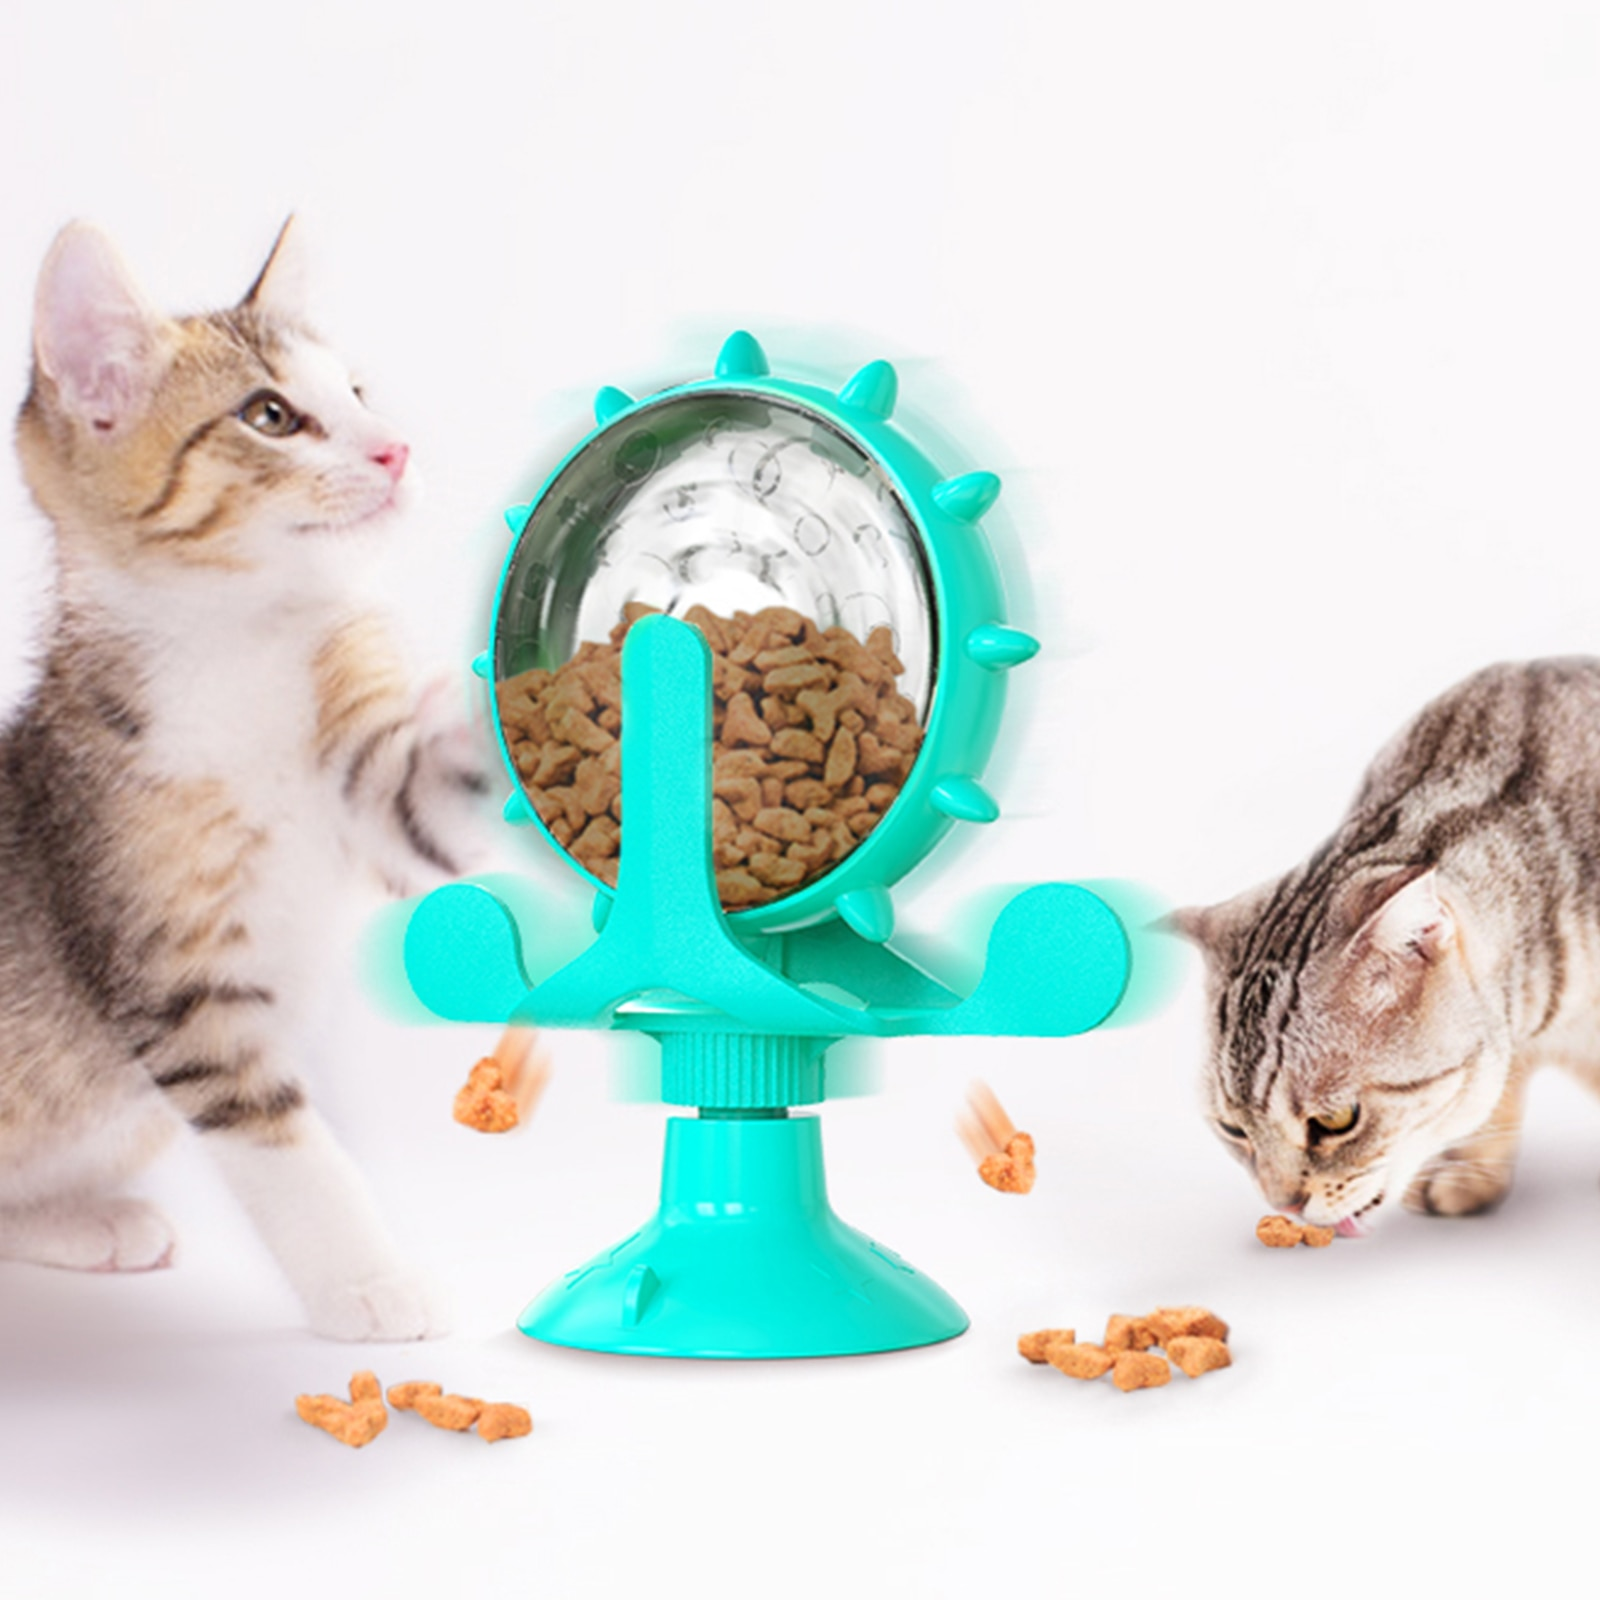 cat dry food pro plan light low calorie for cats turkey 1 5 kg Making money round cat toys Rotating Windmill Cat Toys for Indoor Cats, Interactive Cat Puzzle Toy, Cat Food Dispenser Toy